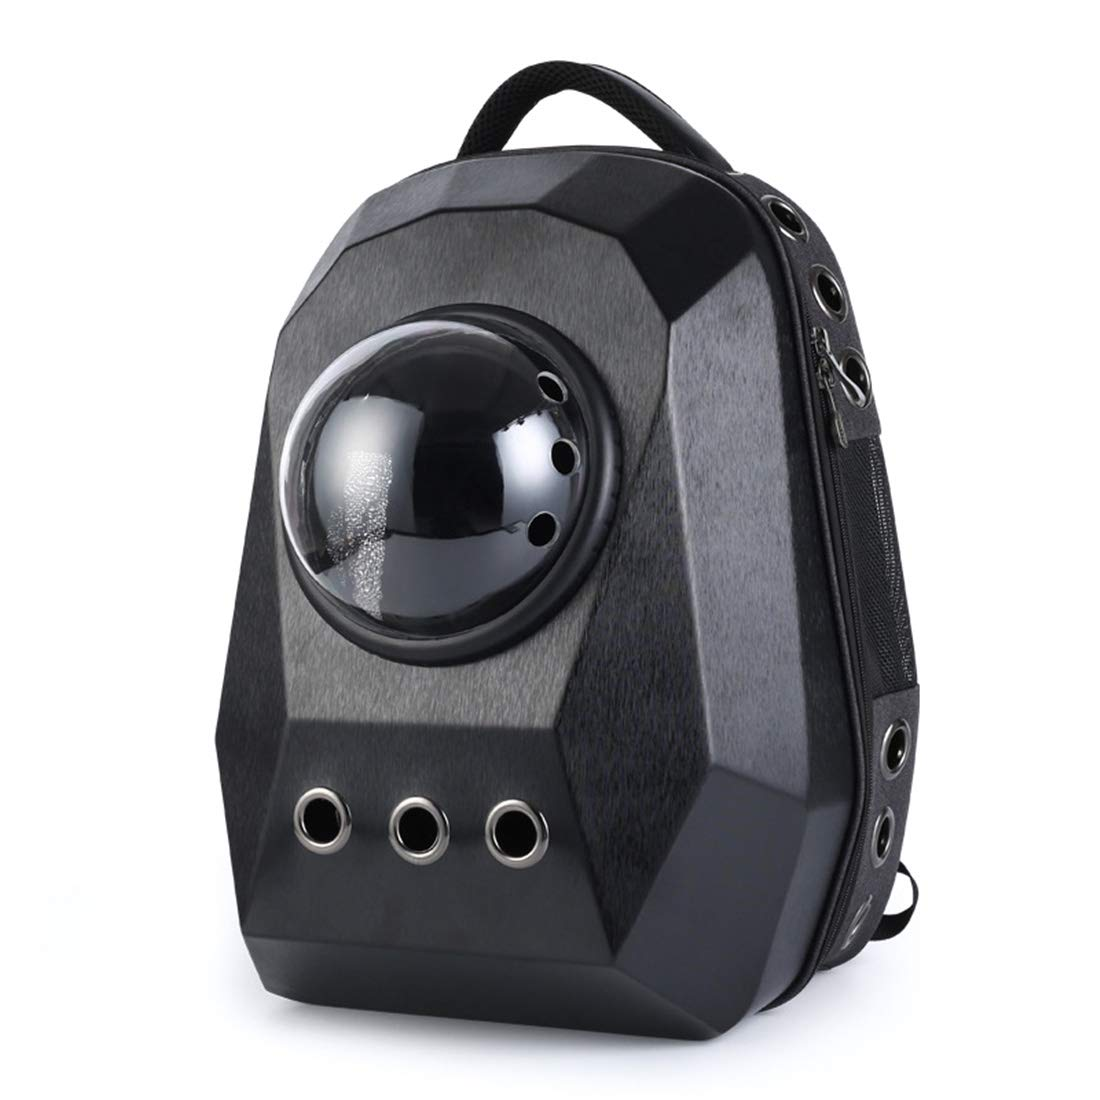 Black SHINING KIDS Portable Pet Backpack Diamond Cutting Surface Cat And Dog Bag Large Space Handbag For Travel,Hiking